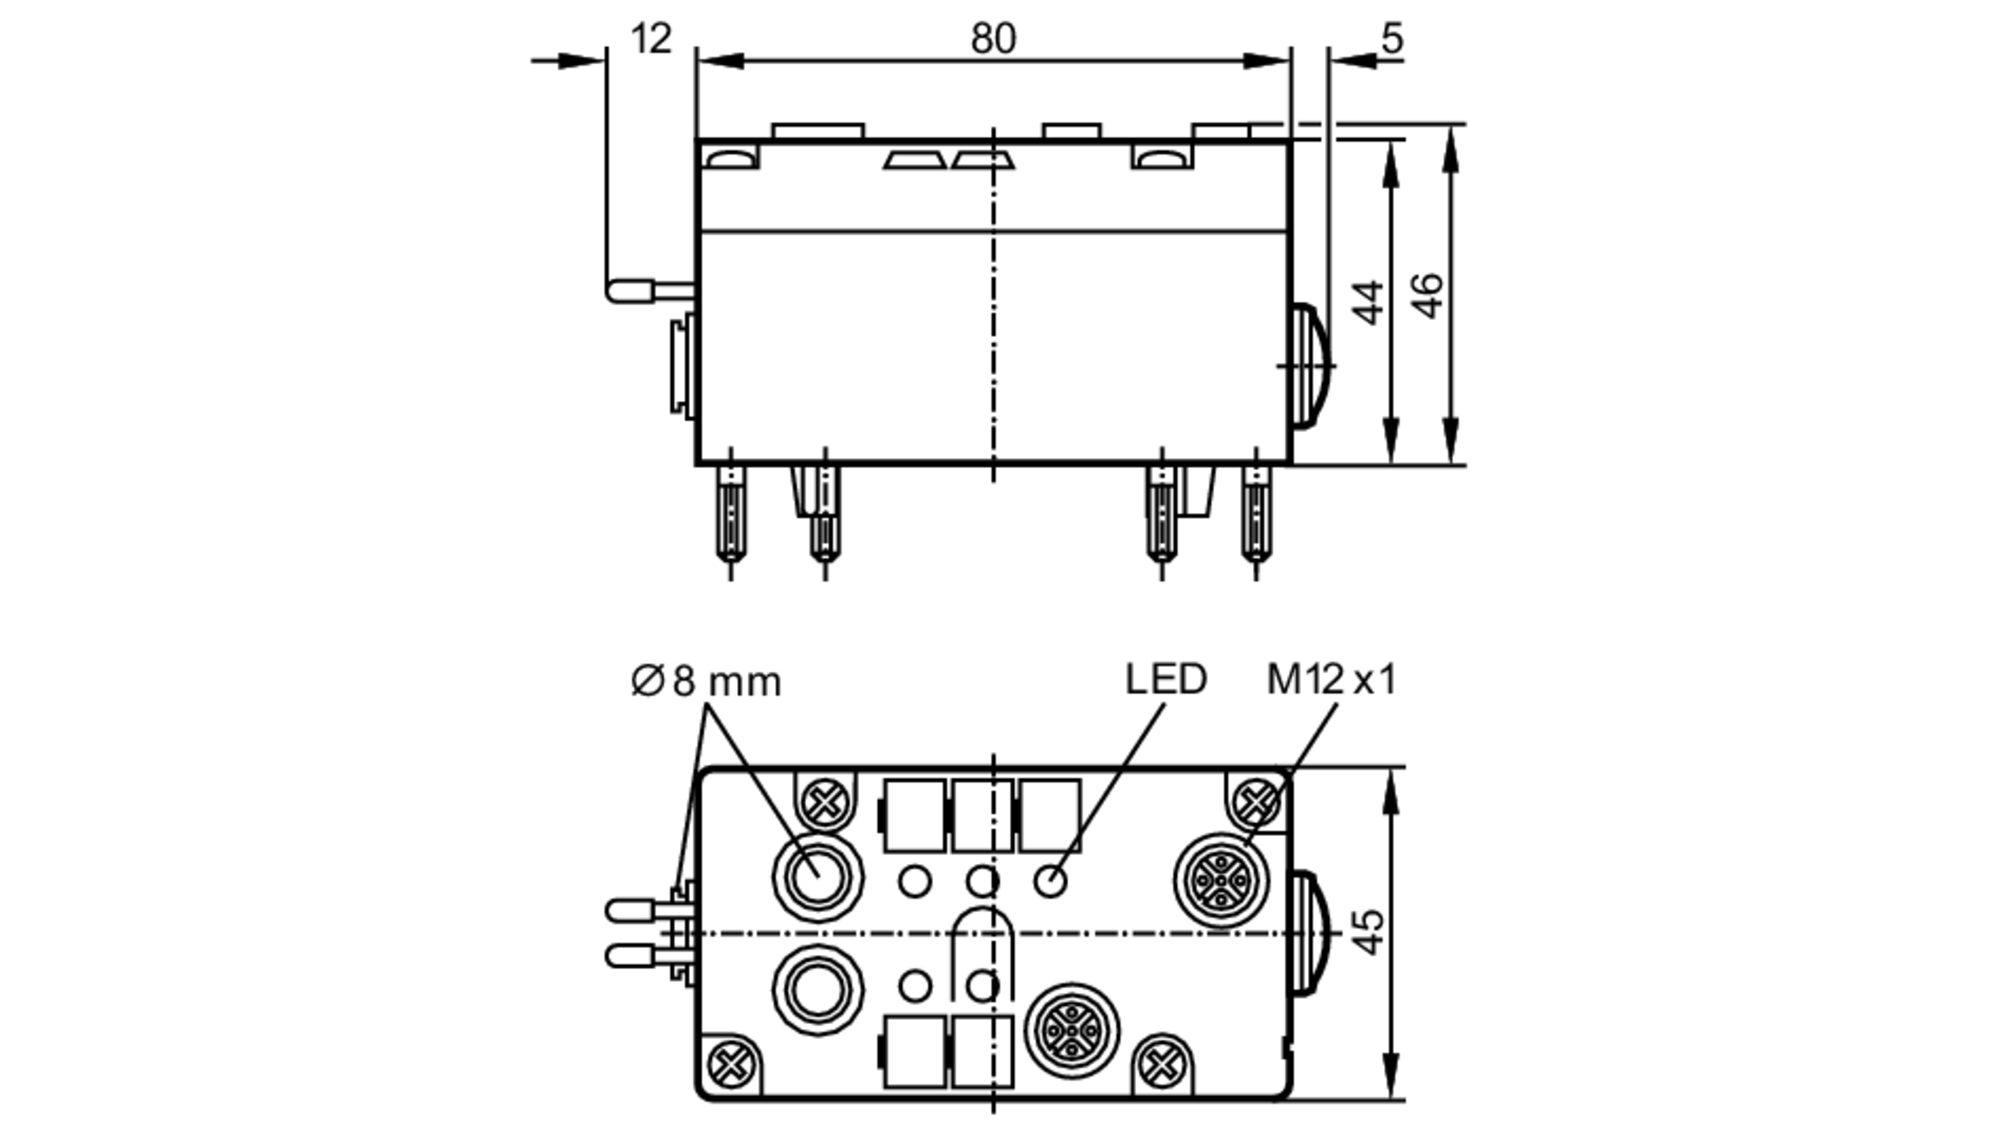 hight resolution of ac2024 as interface airbox ifm electronic scale drawing